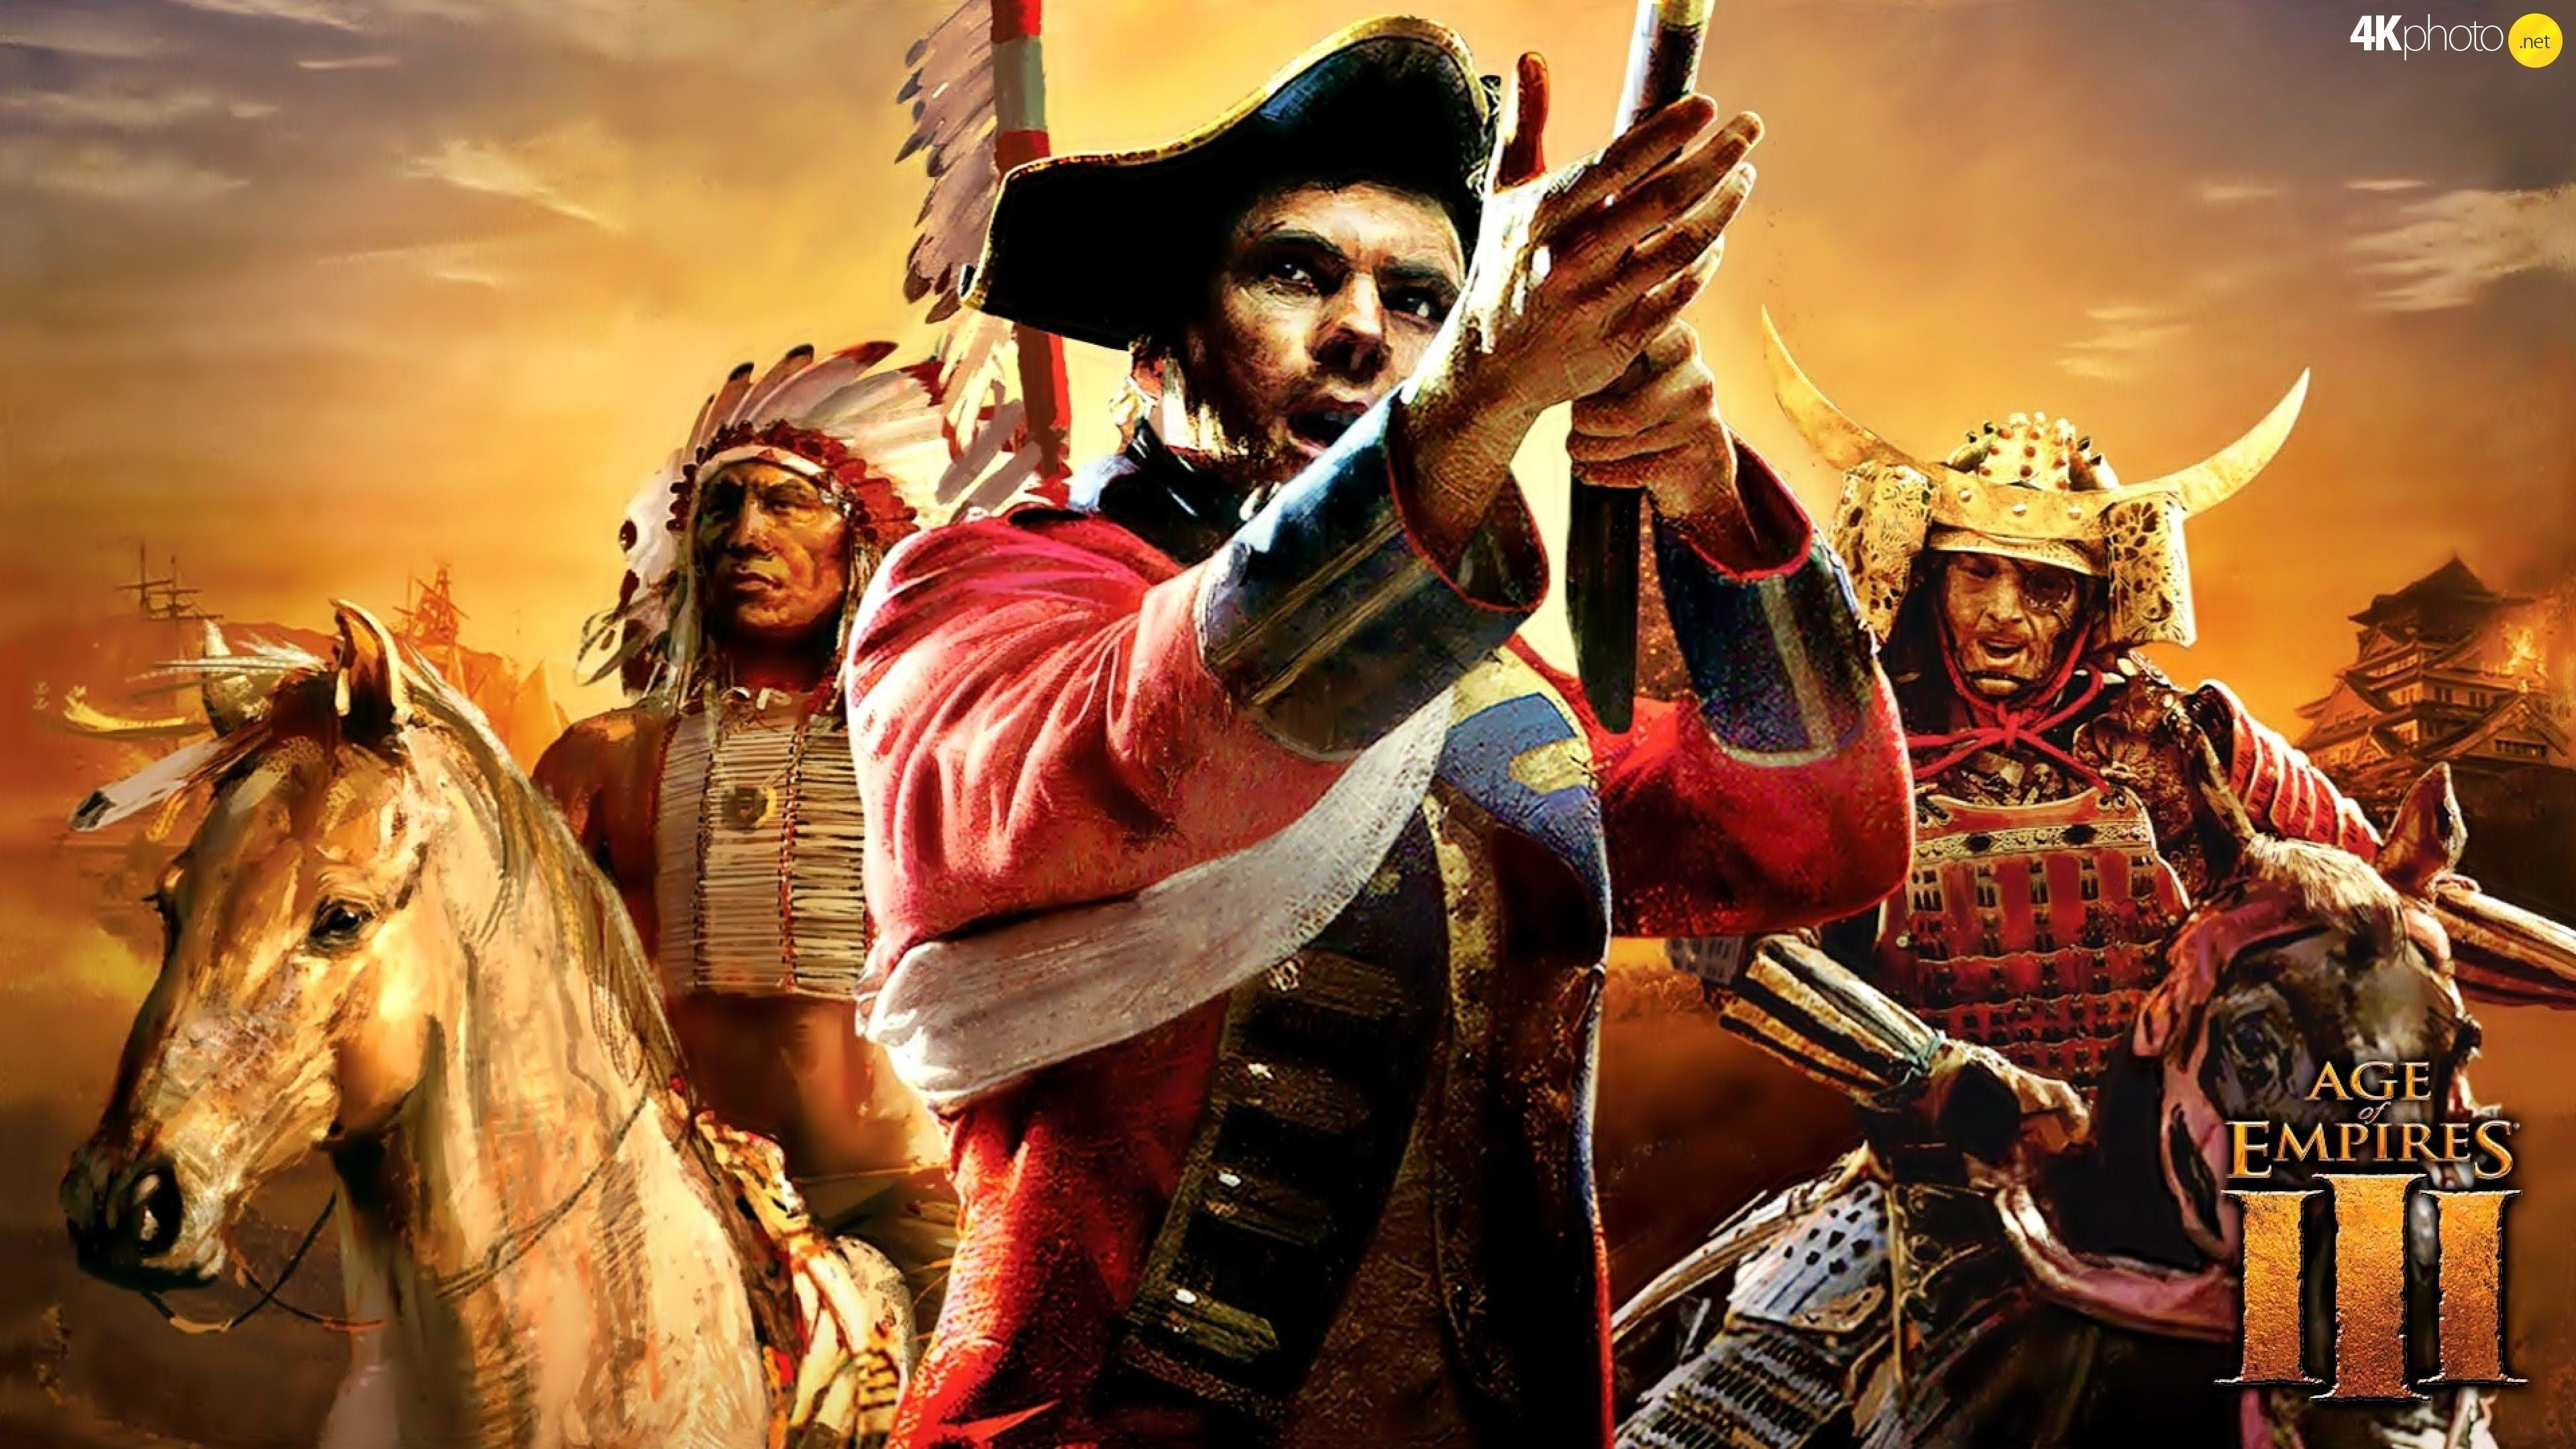 Age Of Empires 3 - Puzzle jigsaw wallpapers: 3840x2160